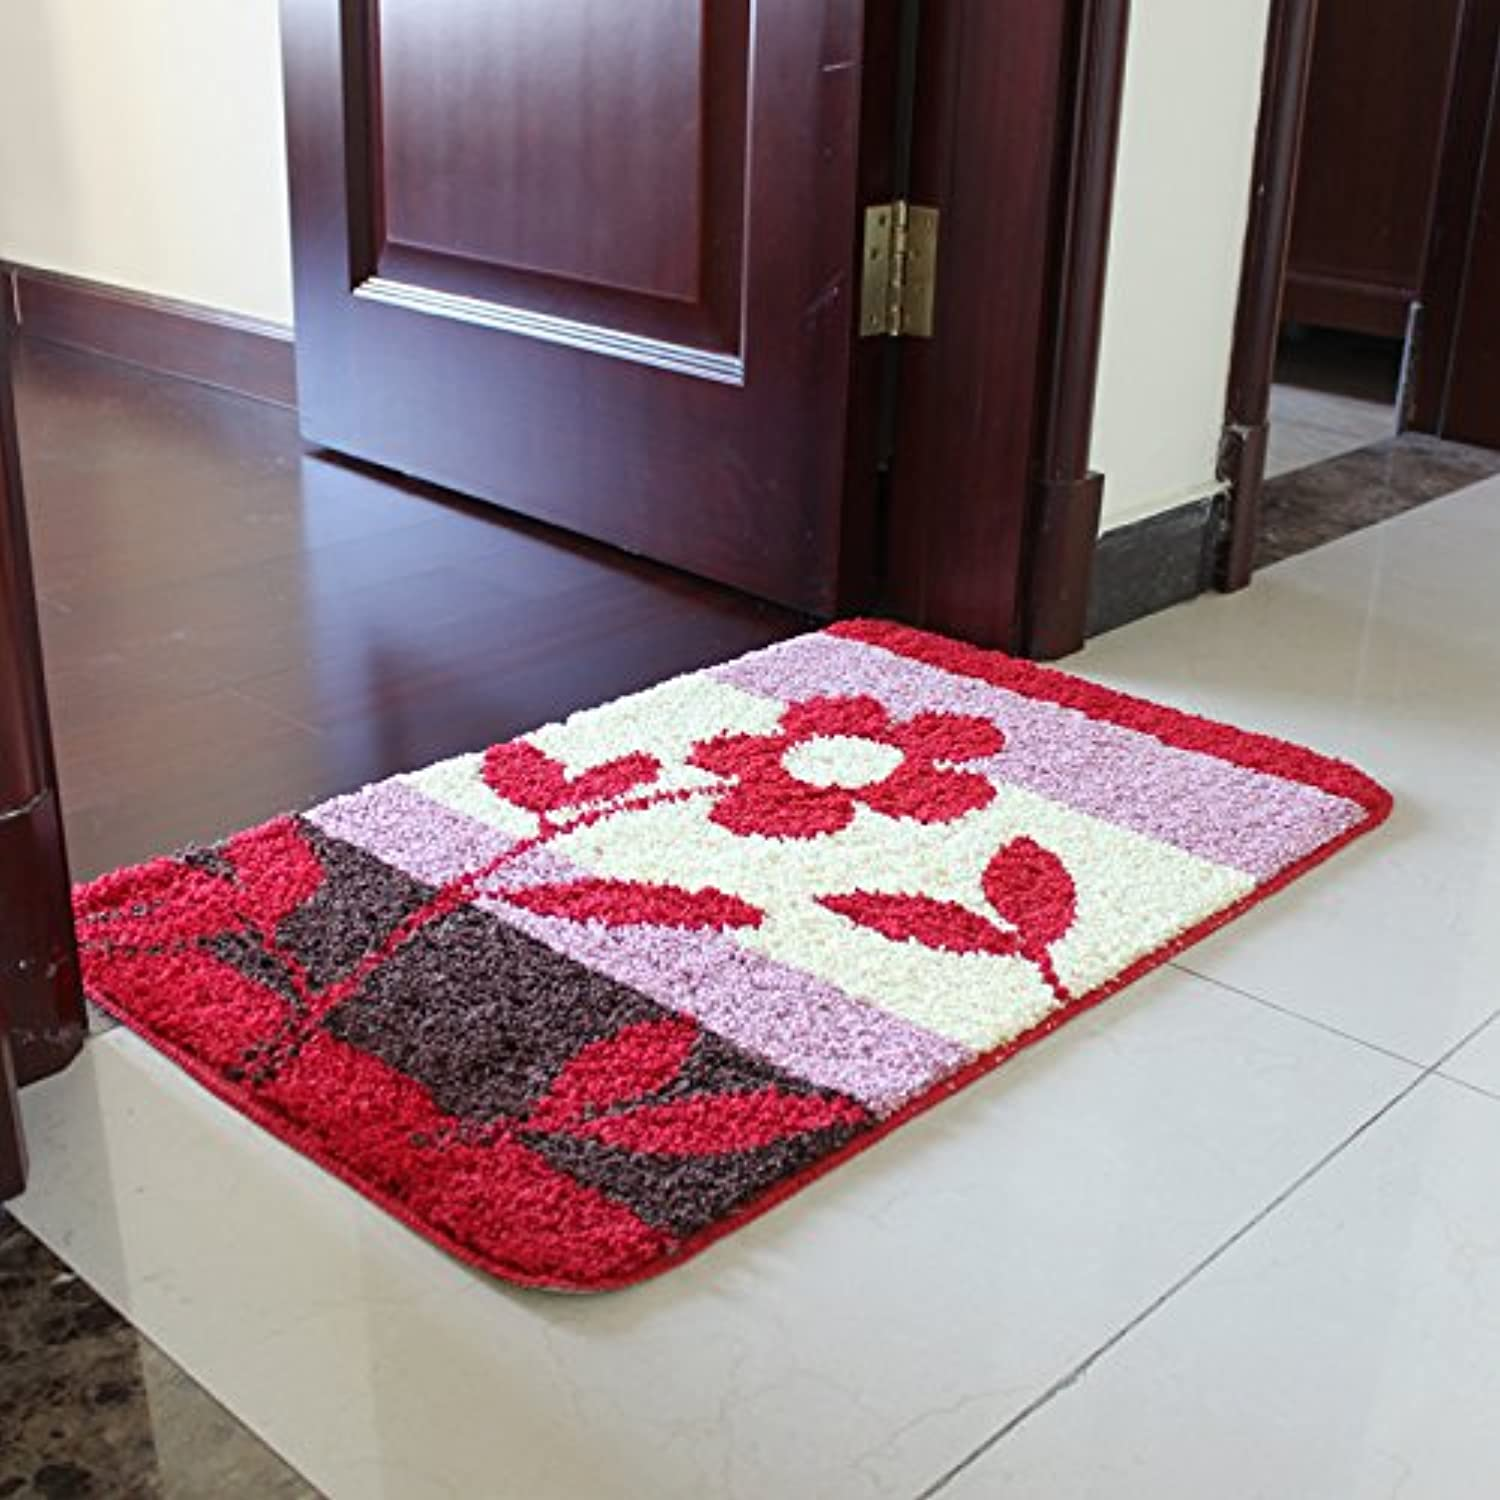 JinYiDian'Shop-The Bedroom Door Mat Scouring Pads Living Room Foot ,4060Cm, Alone